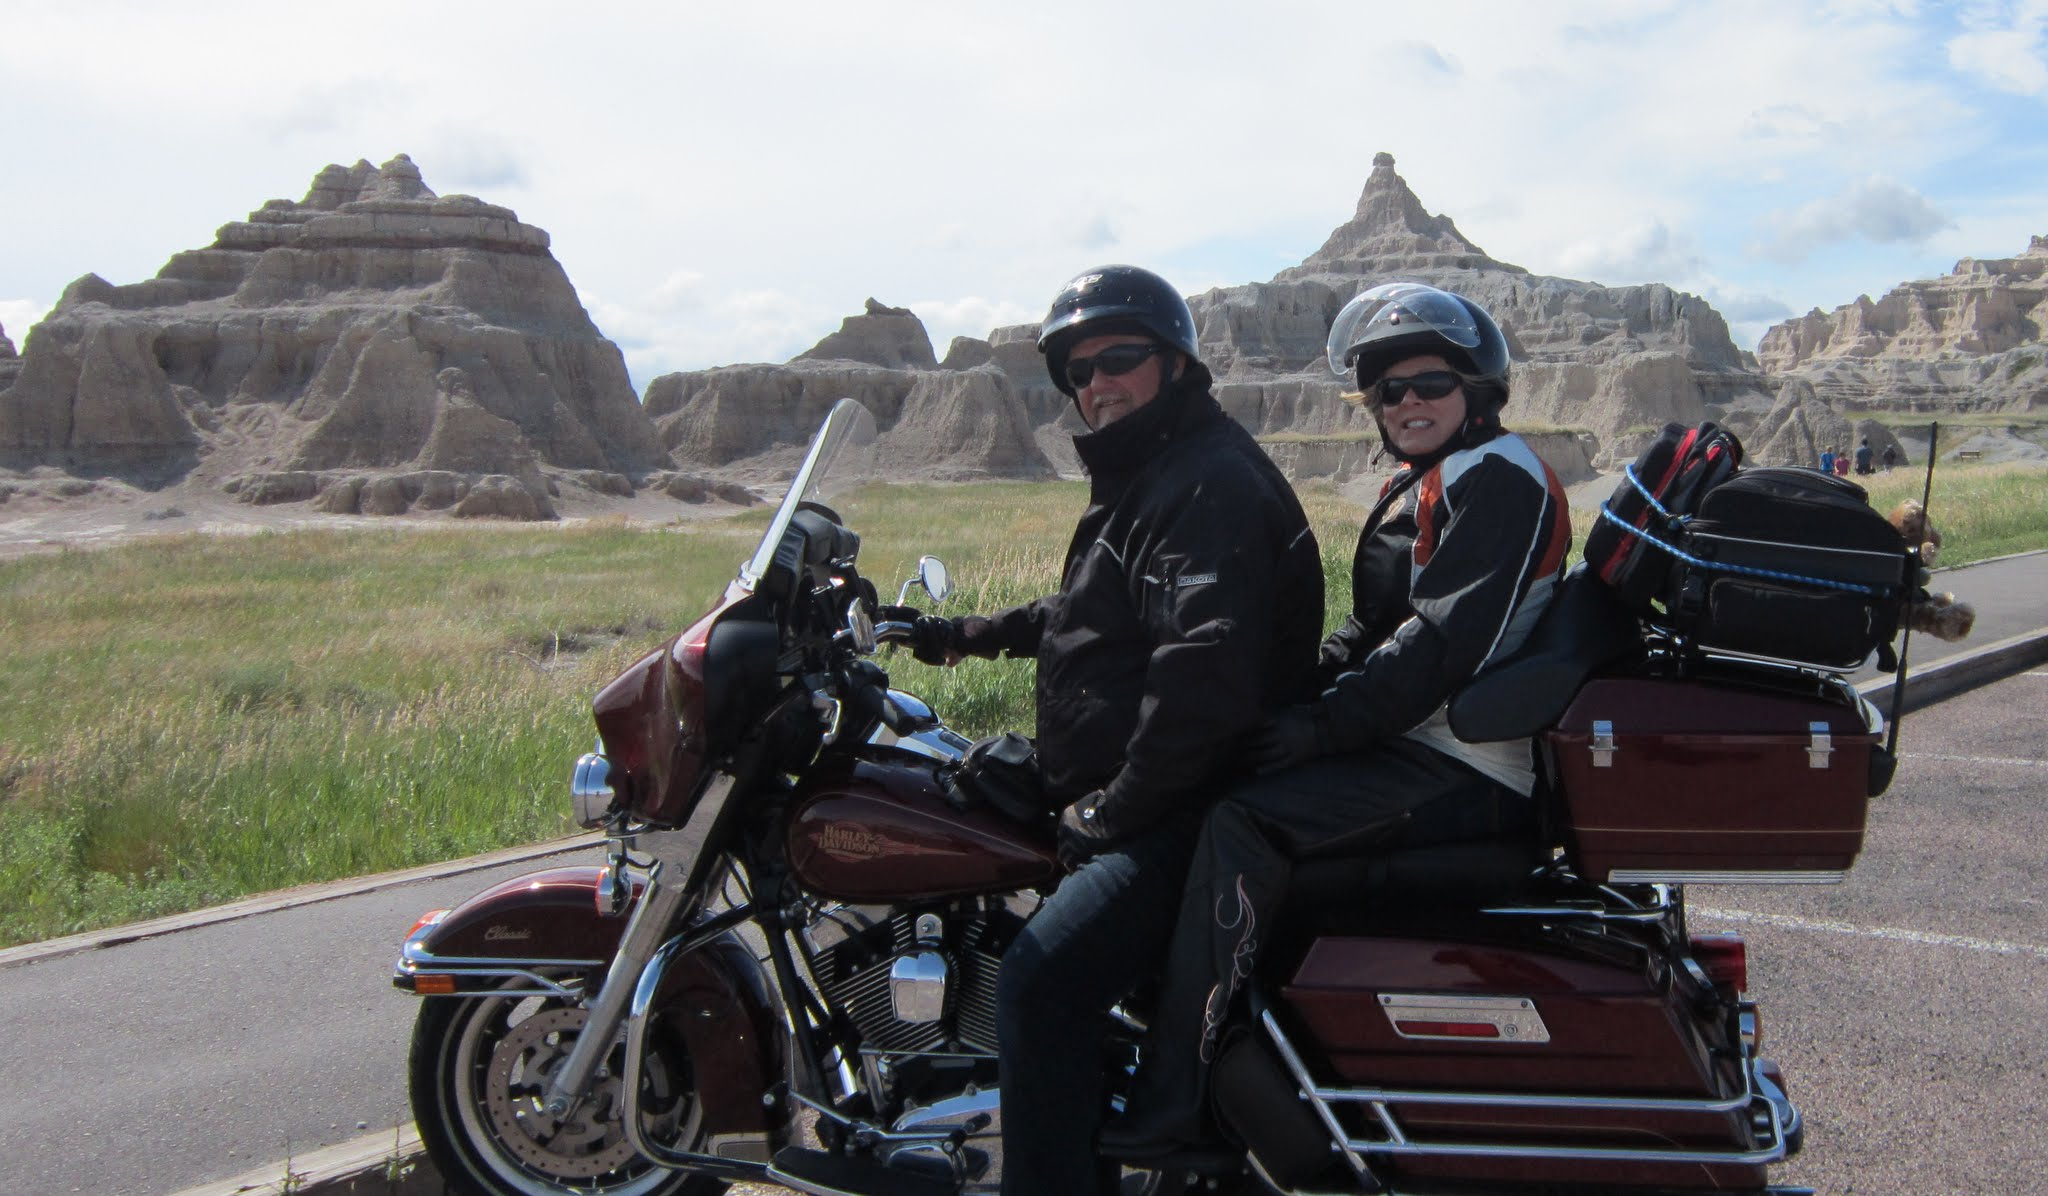 Tips for International travel: Ed and his wife on a motorcycle